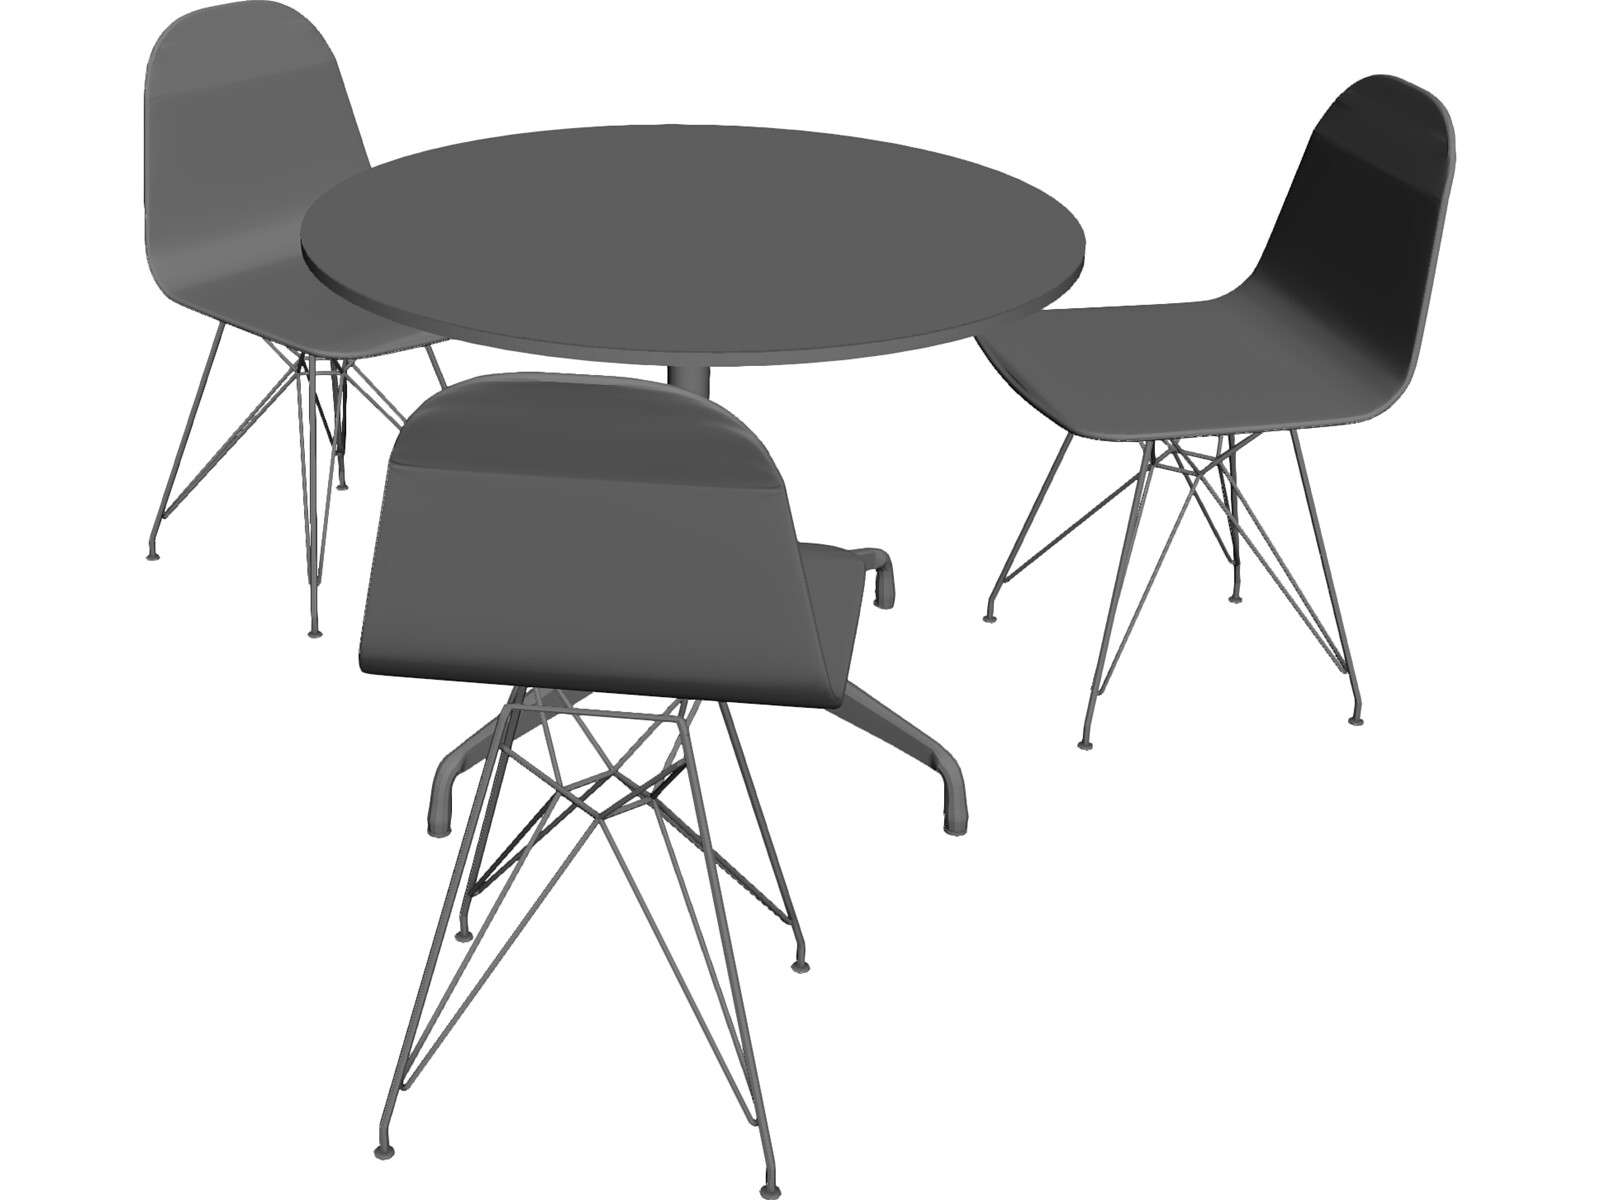 Eames Seatings and Table